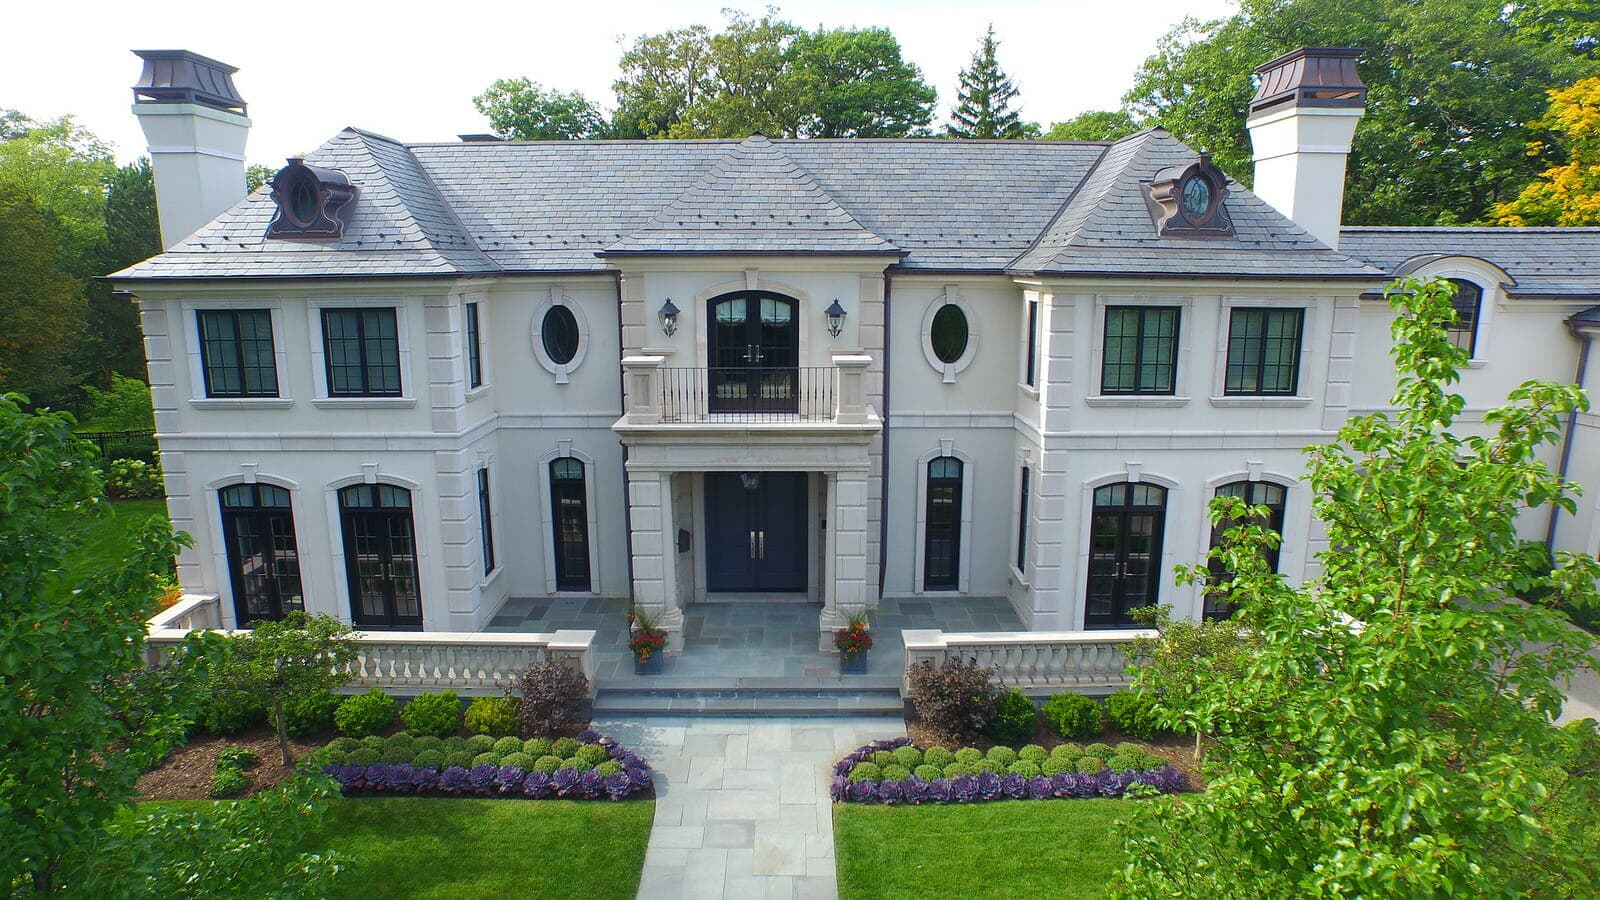 Slate roofs can improve the look and value of your home